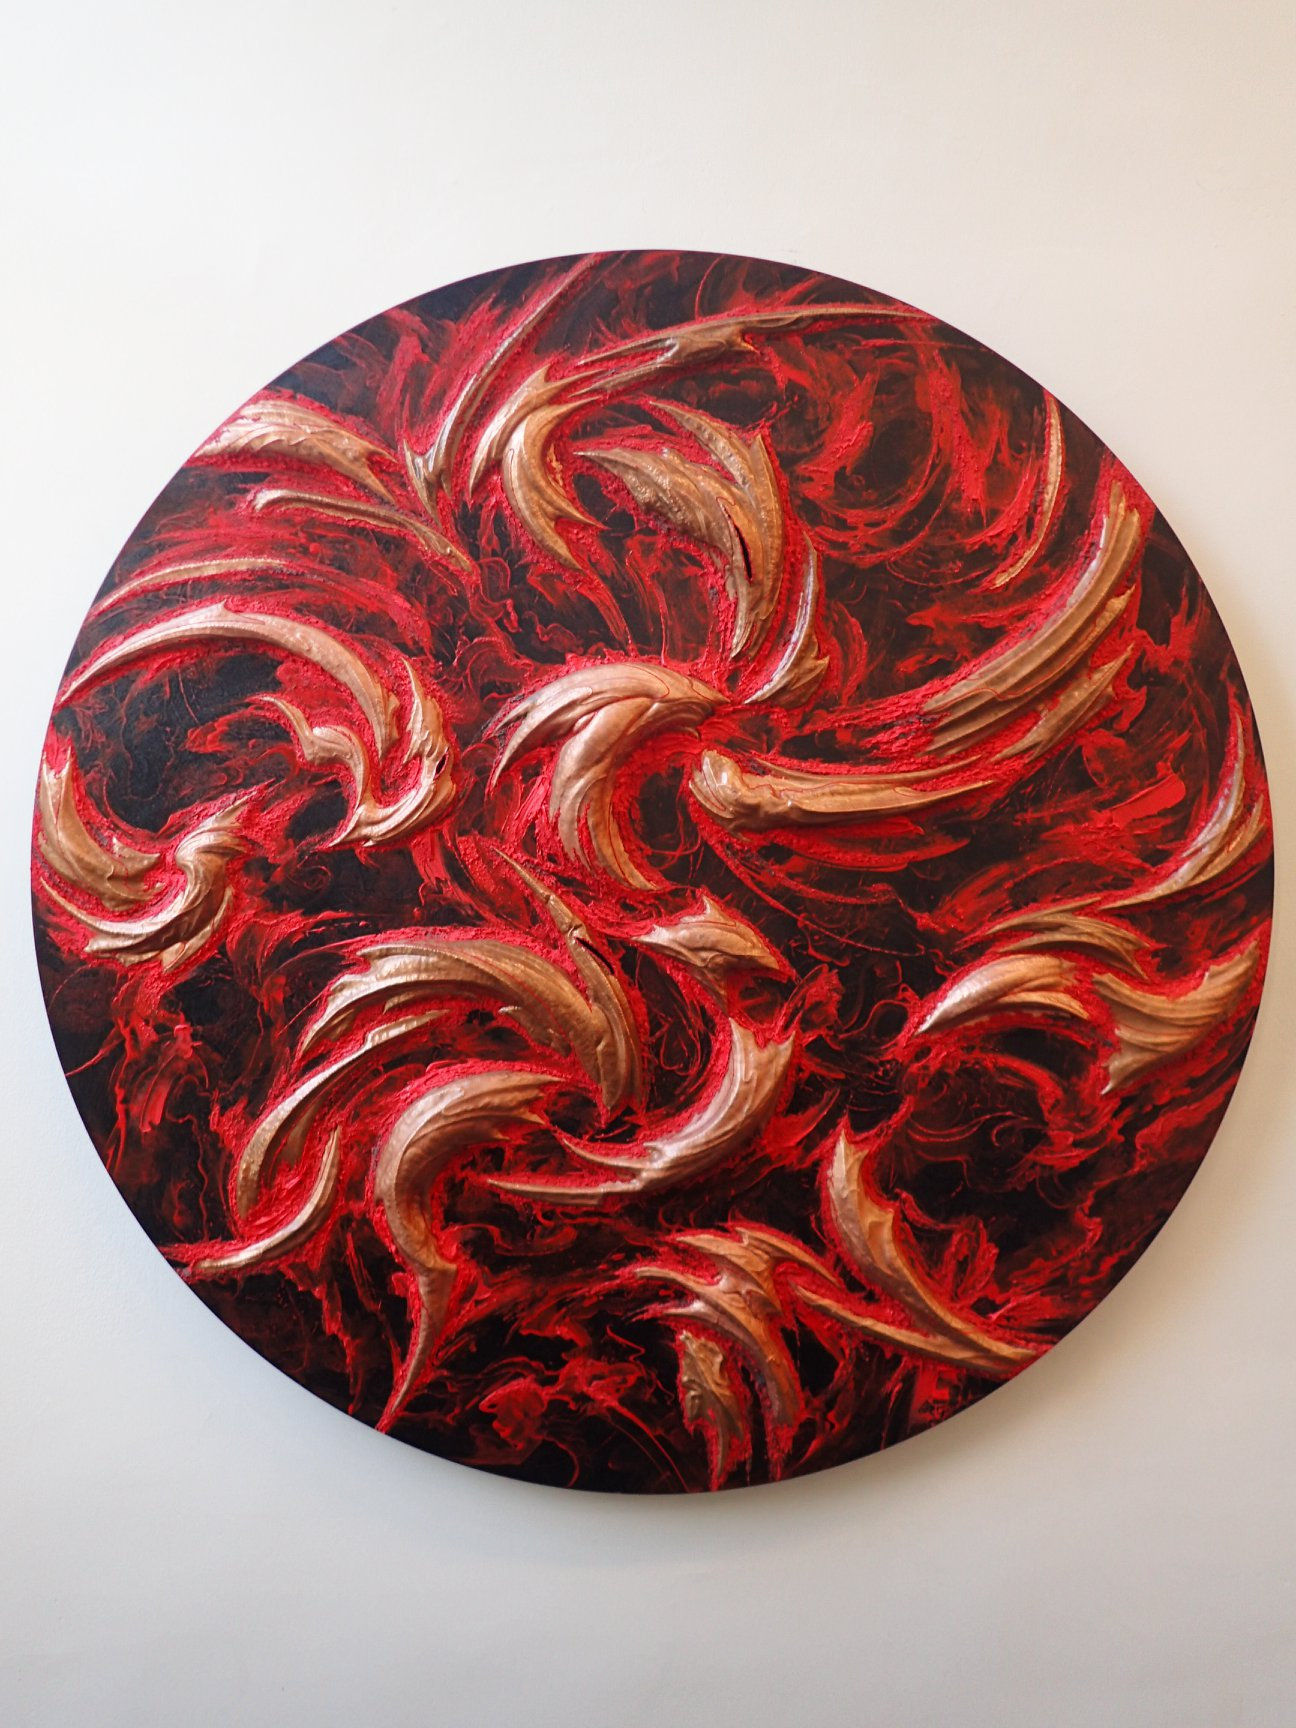 Ardens Mundi 1, Inferno at HOT-BED Gallery.jpg